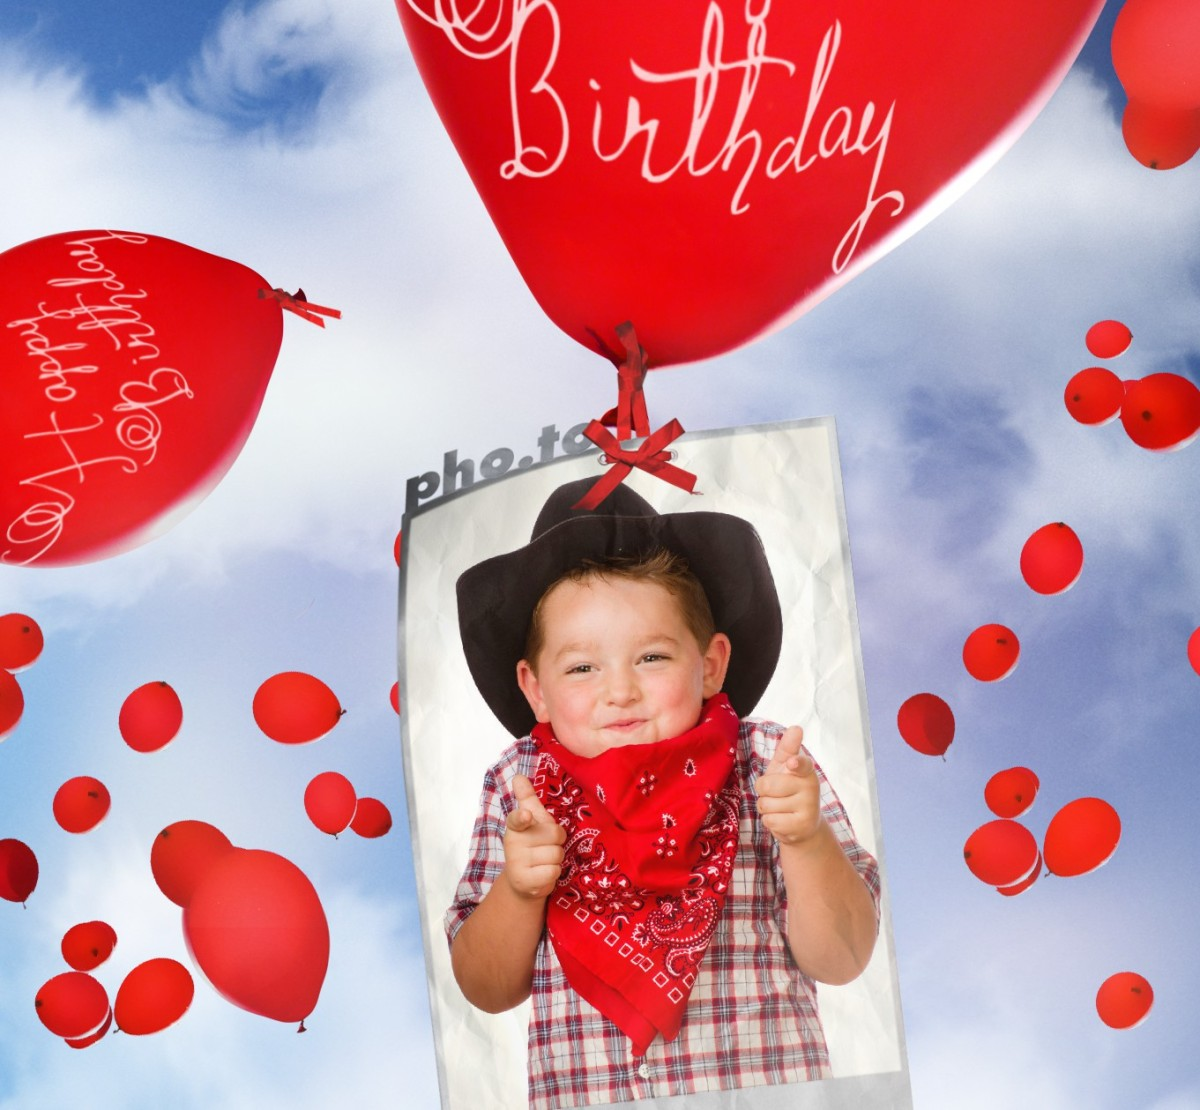 Birthday Ecard With Balloons